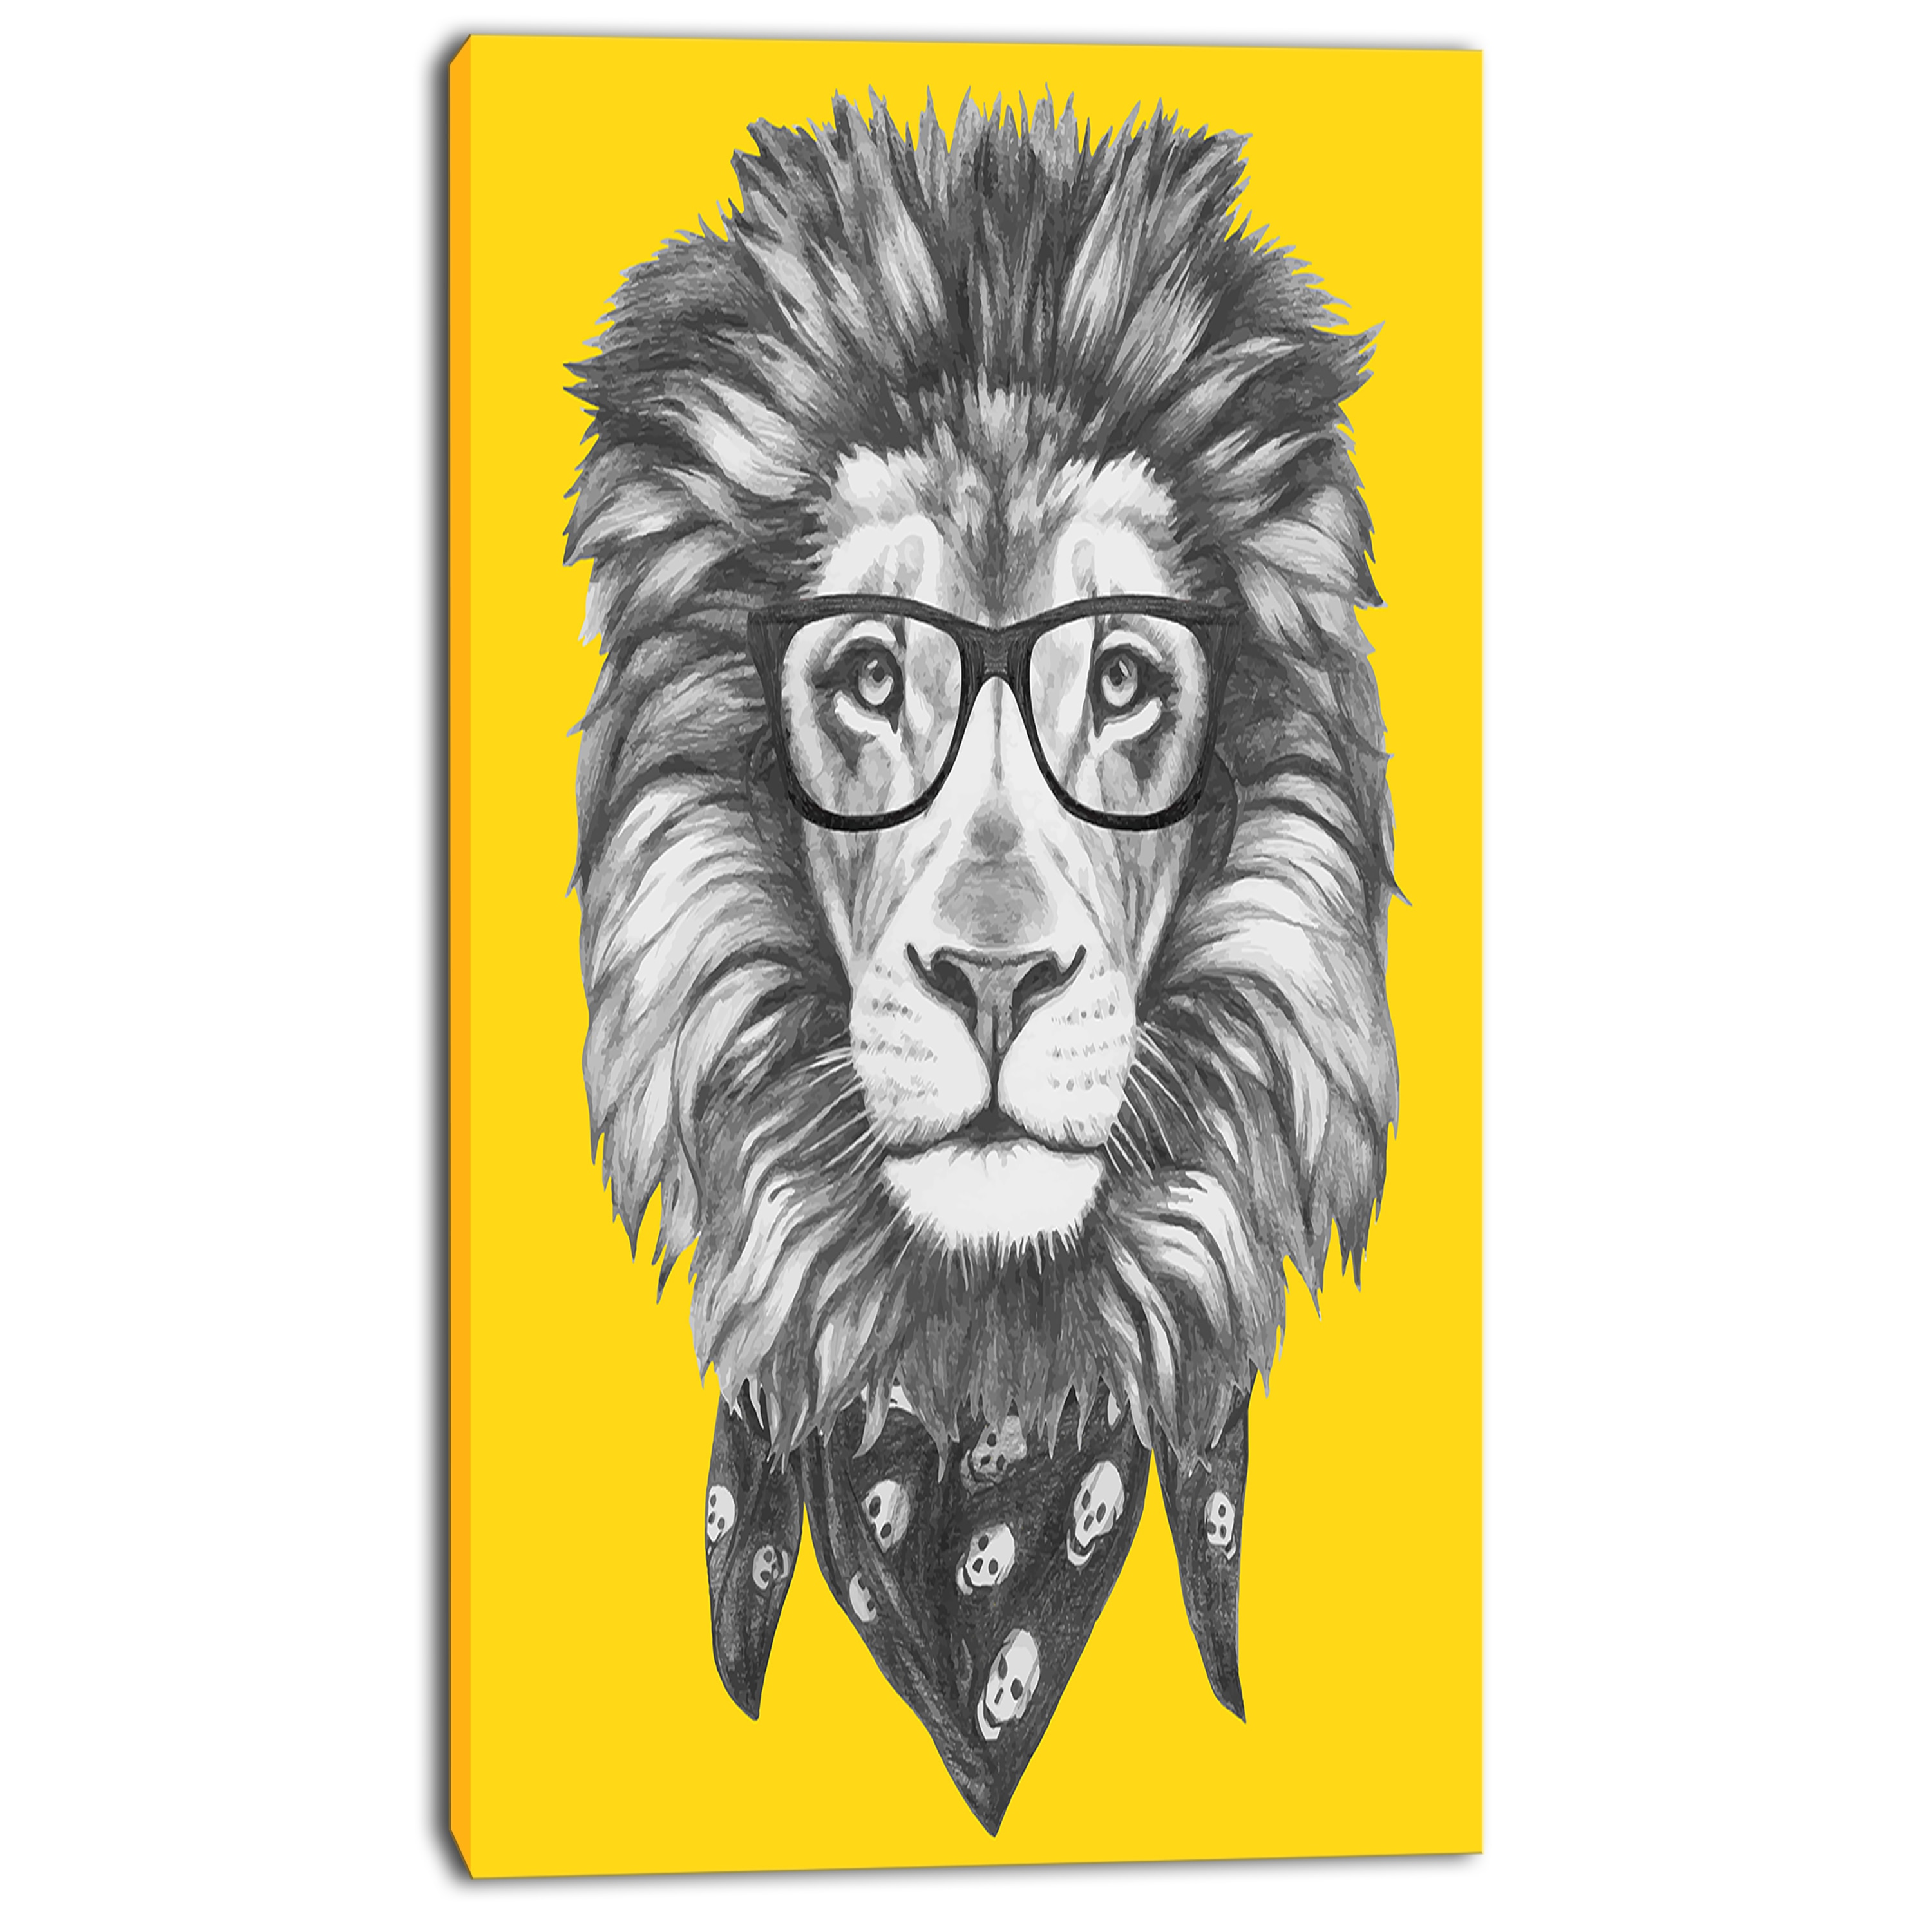 Design Art Lion With Glasses And Scarf 5 Piece Graphic Art On Wrapped Canvas Set Walmart Com Walmart Com